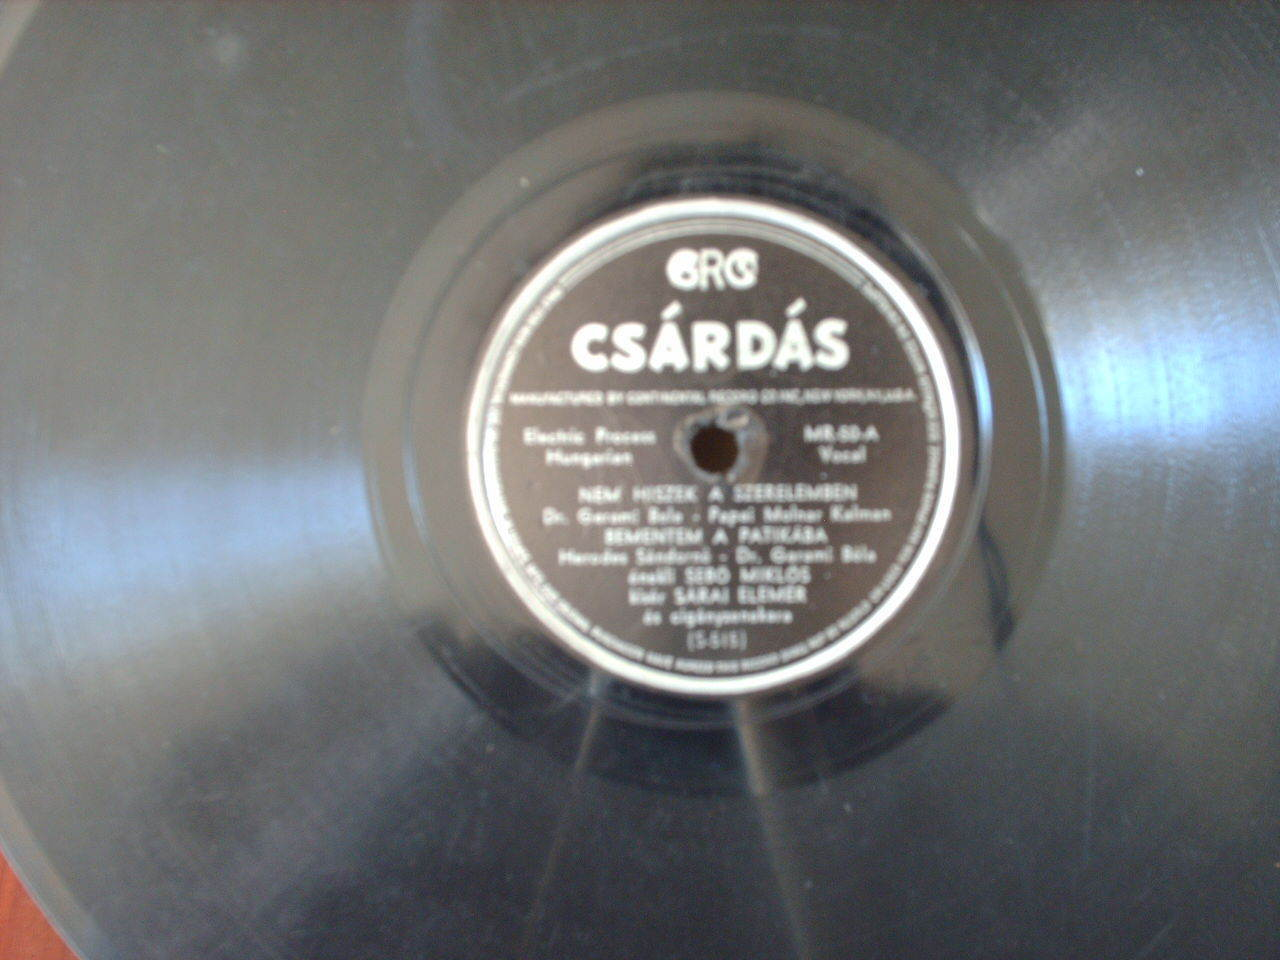 """GYPSY SONG"" on CONTINENTAL RECORD CO  78 rpm by Csardas Made in U.S."